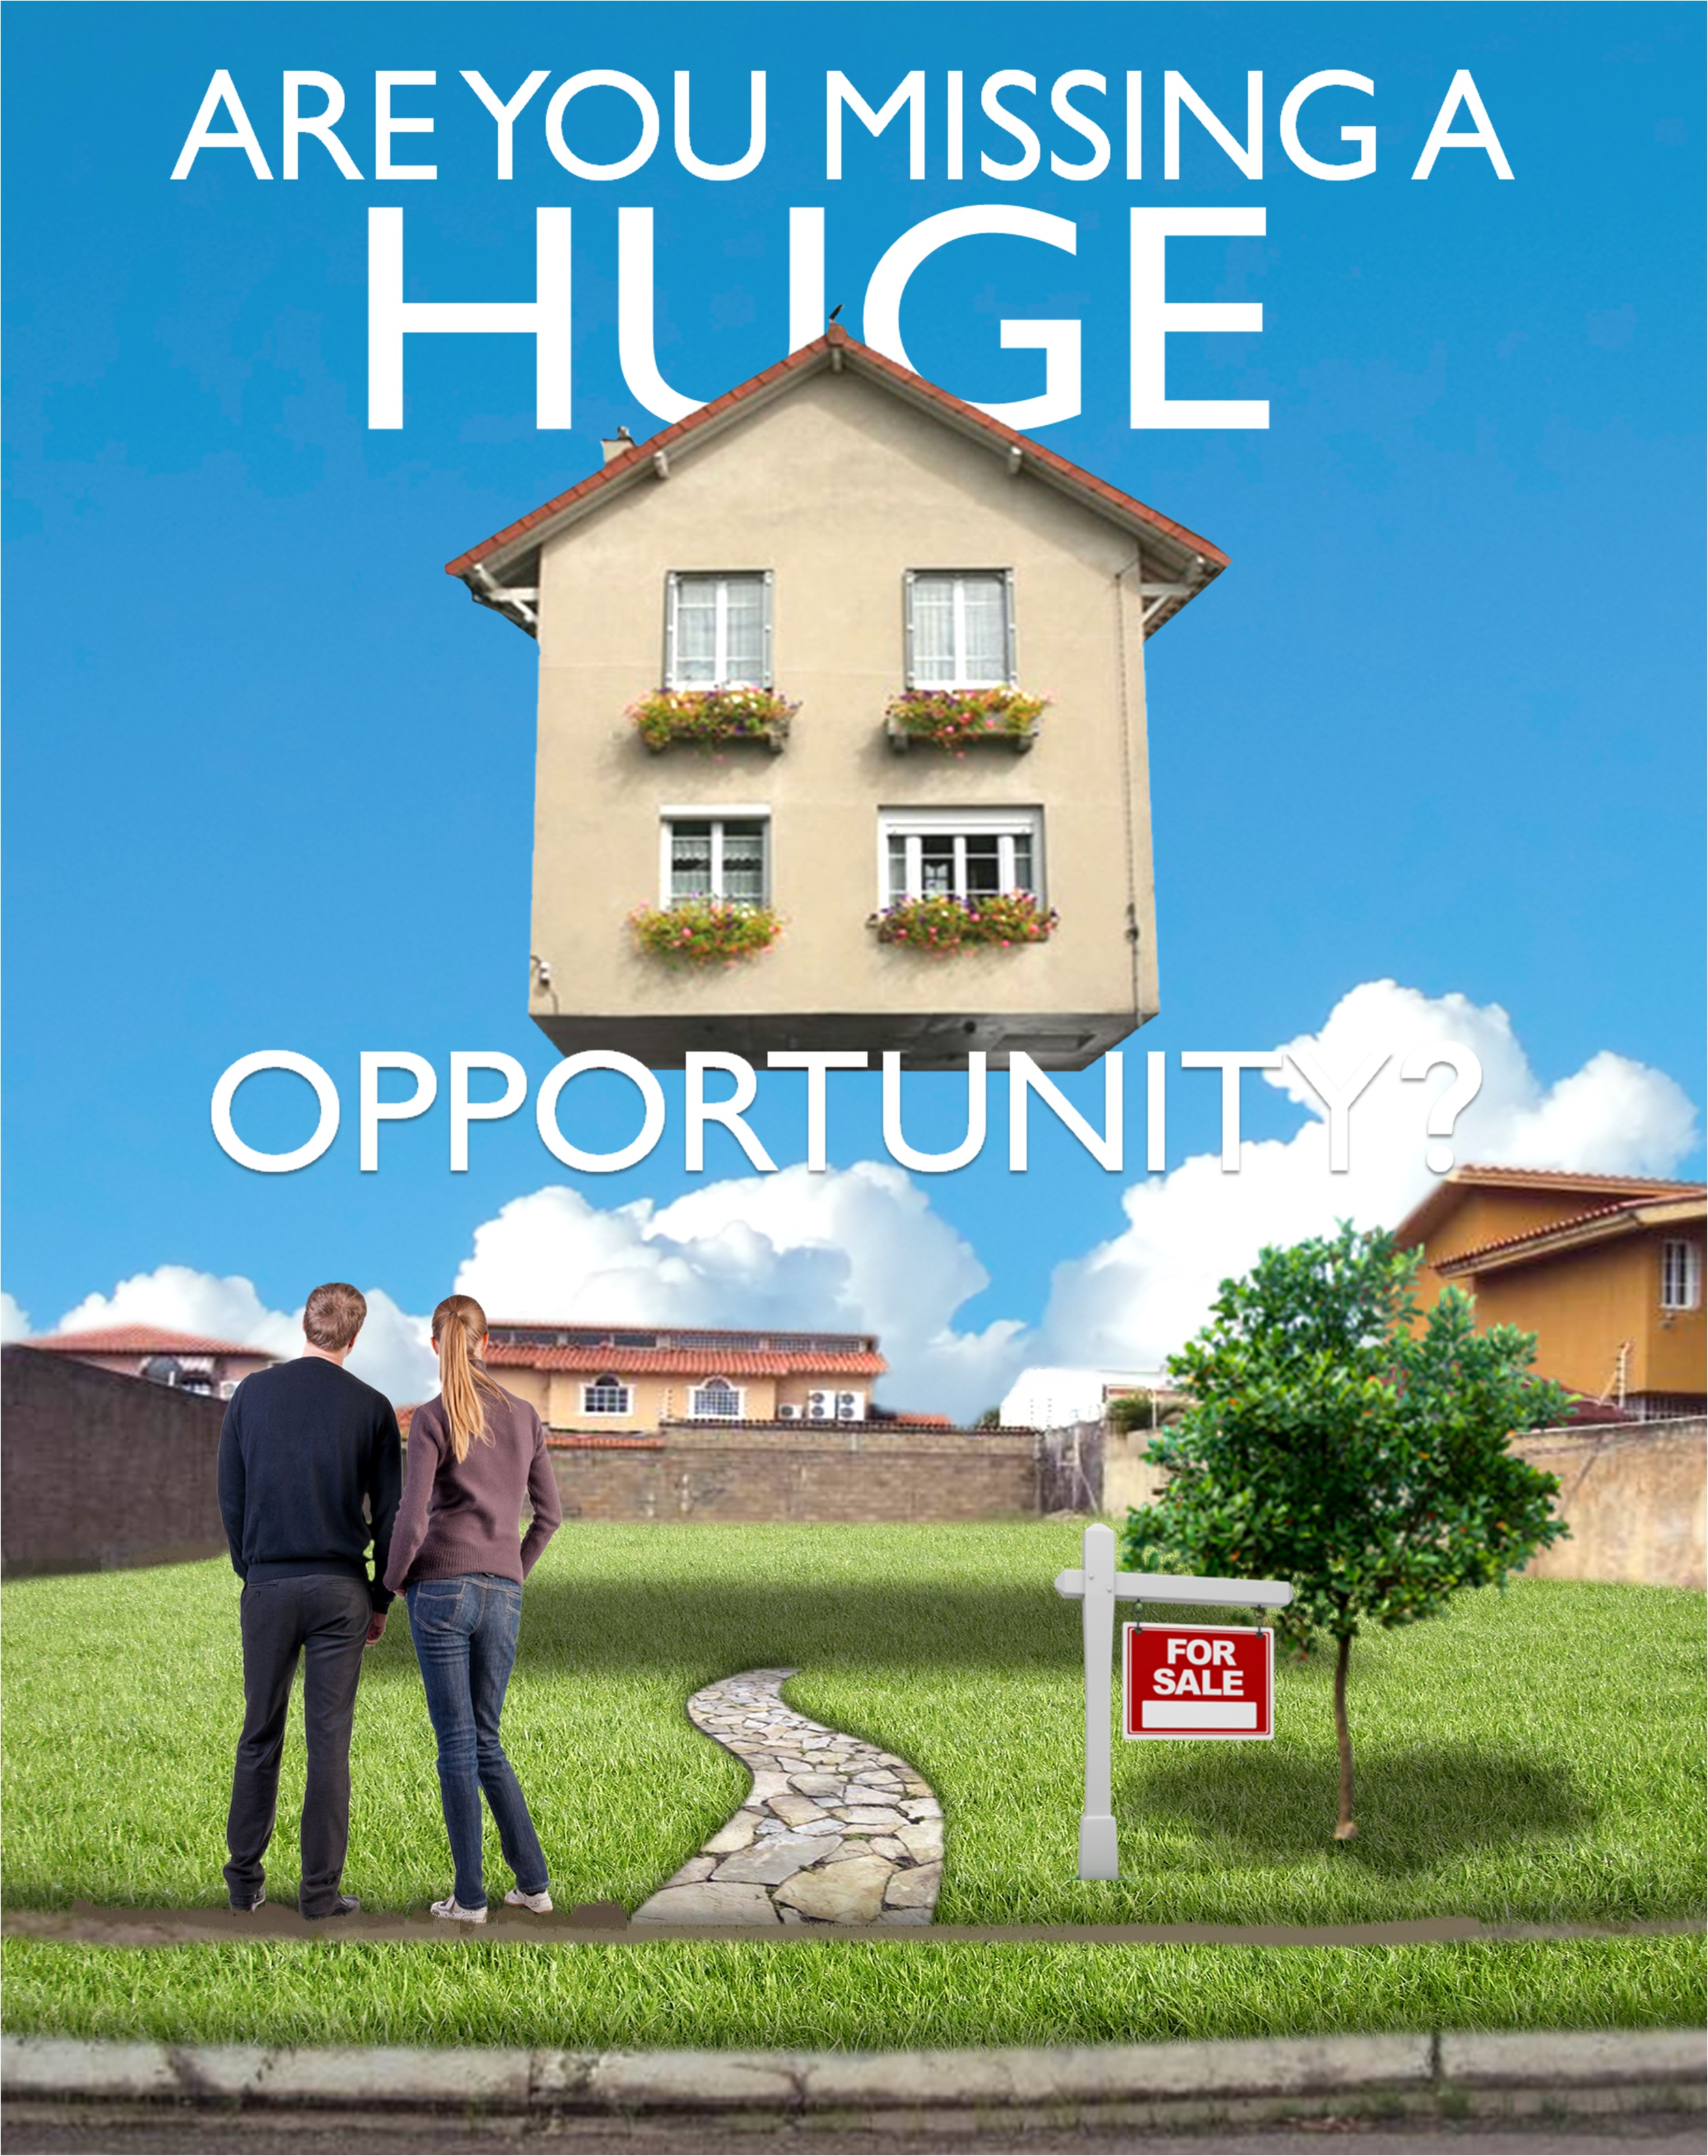 We Buy Houses In South Florida  missing an opportunity